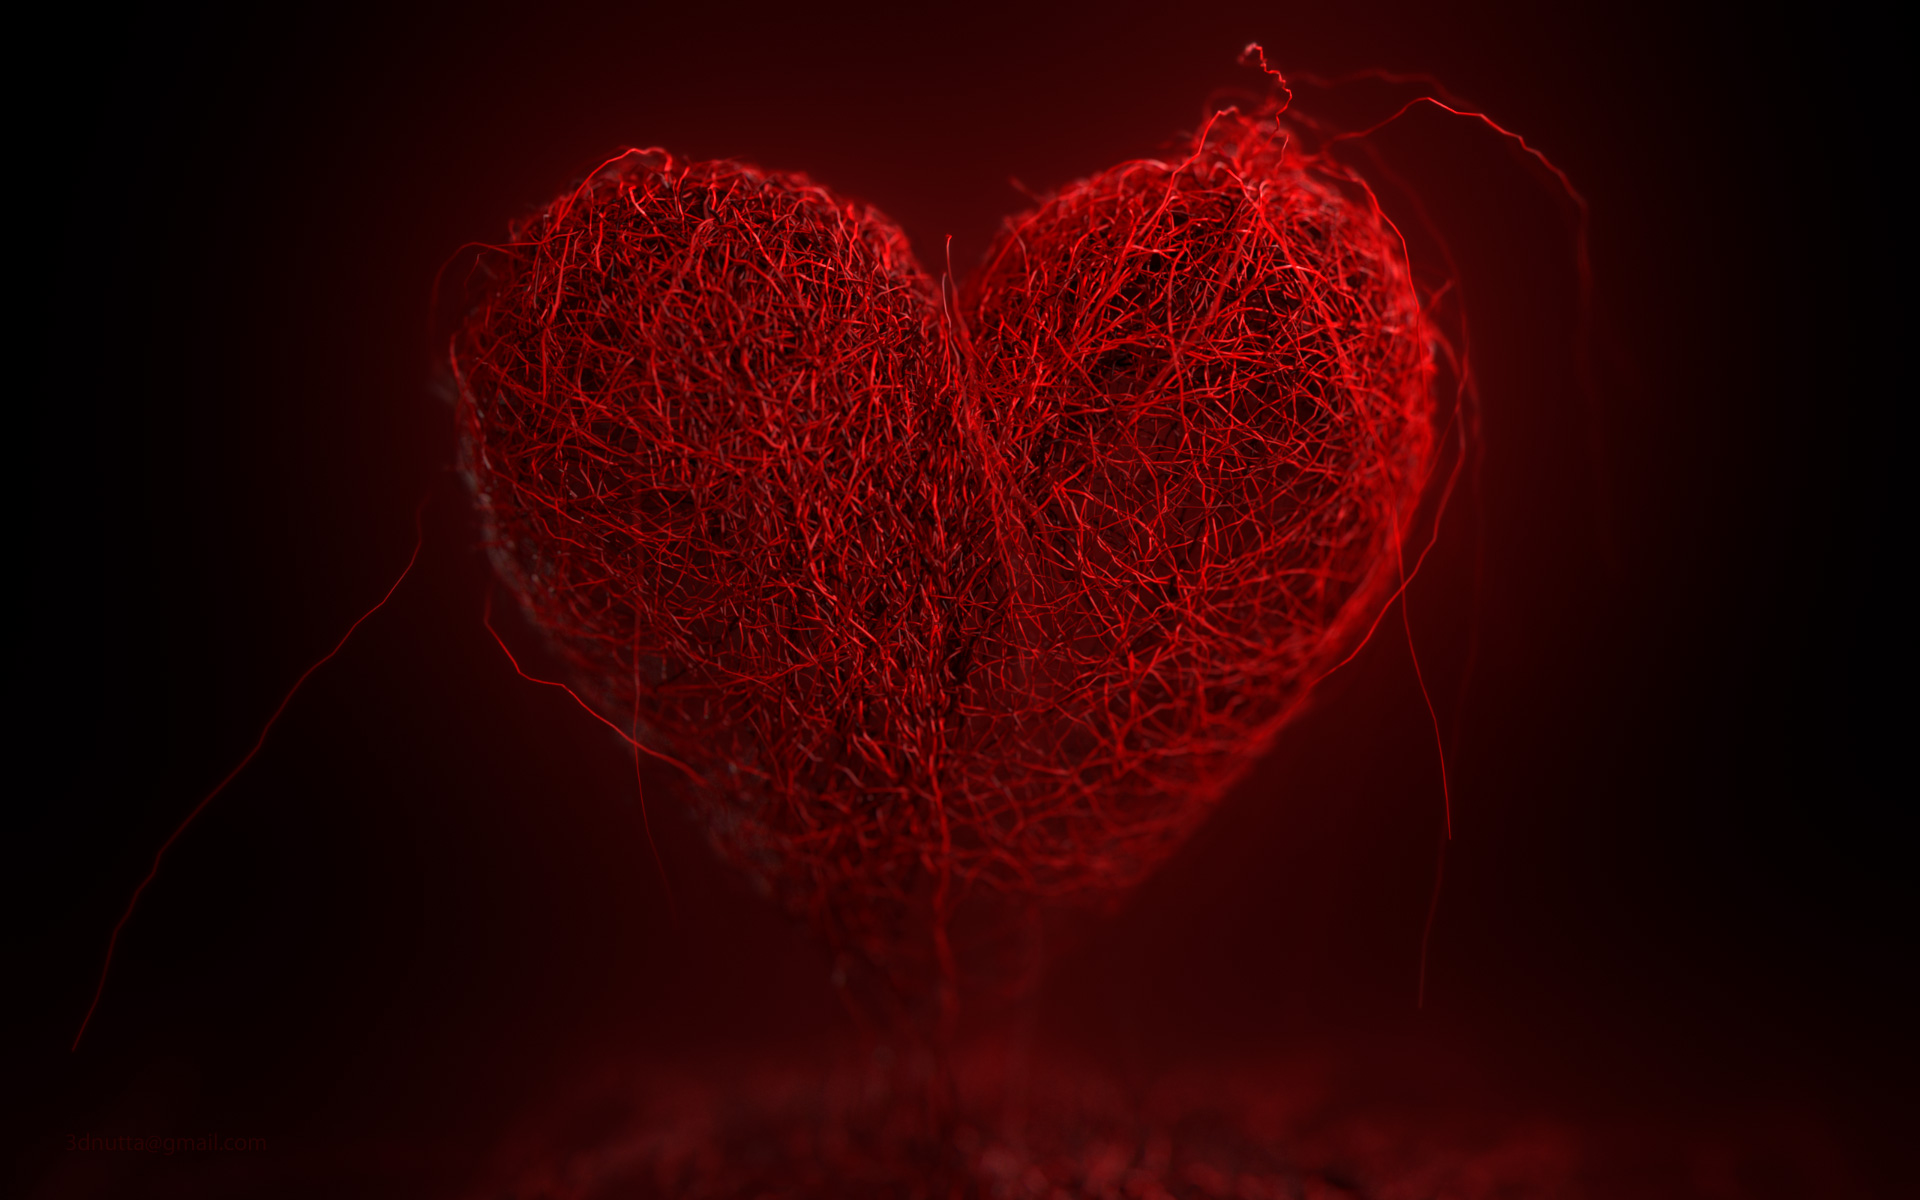 Interinclusion Article Archive Plagues Of The Heart And Mind